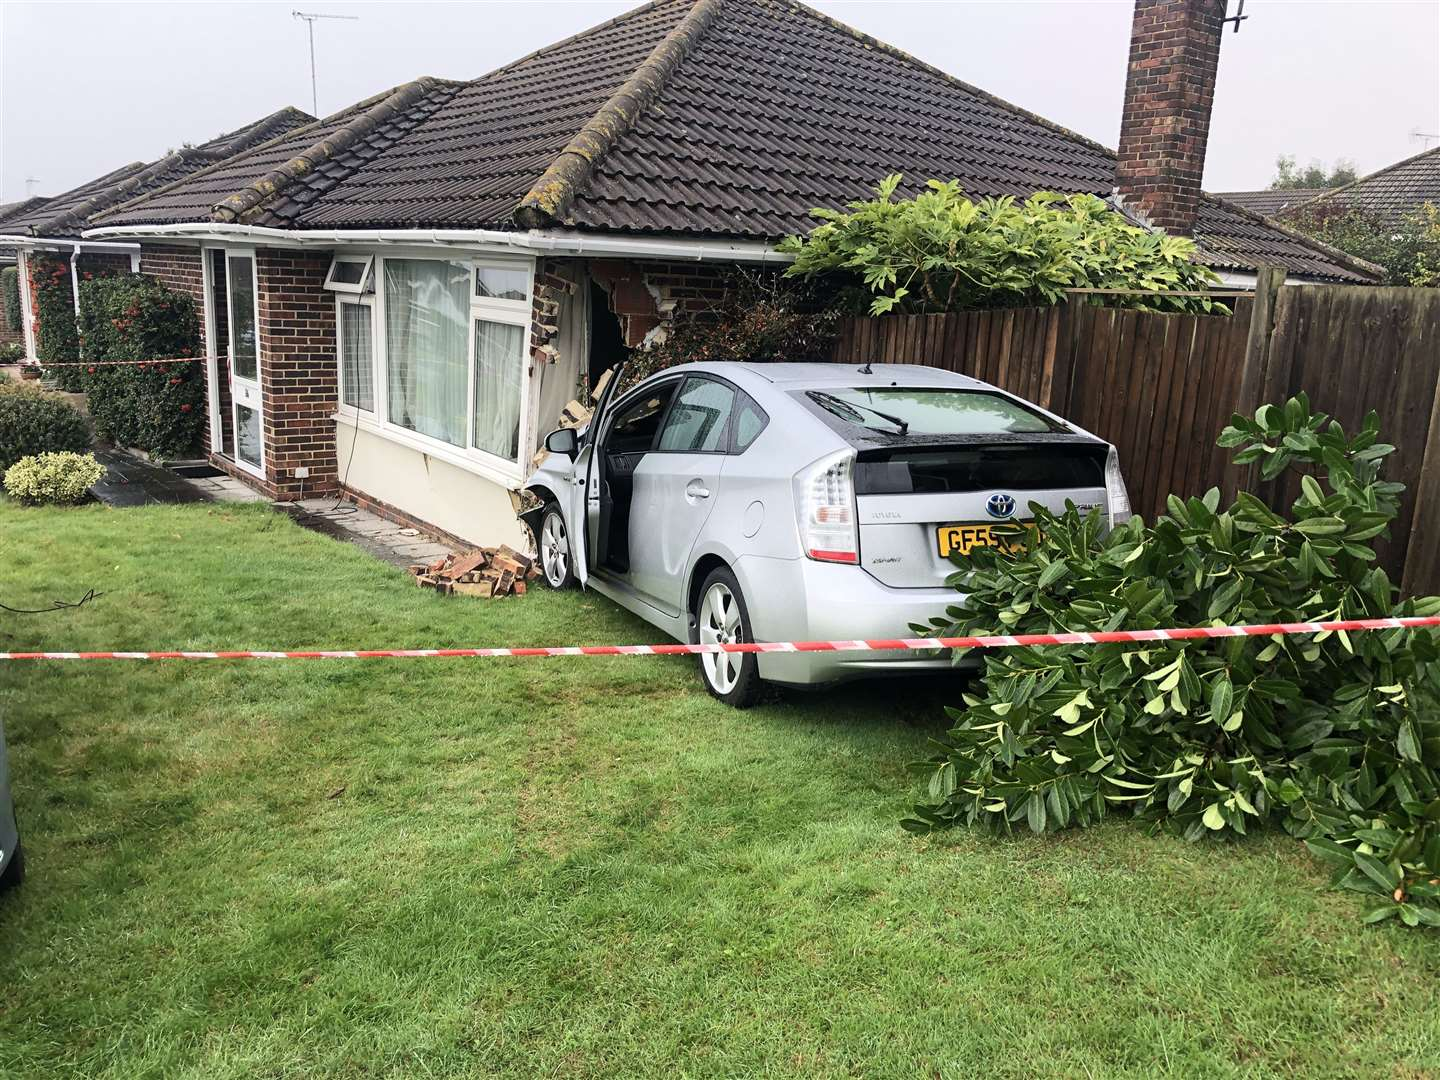 A car crashed into a bungalow in Nursery Avenue, Bearsted (19354114)